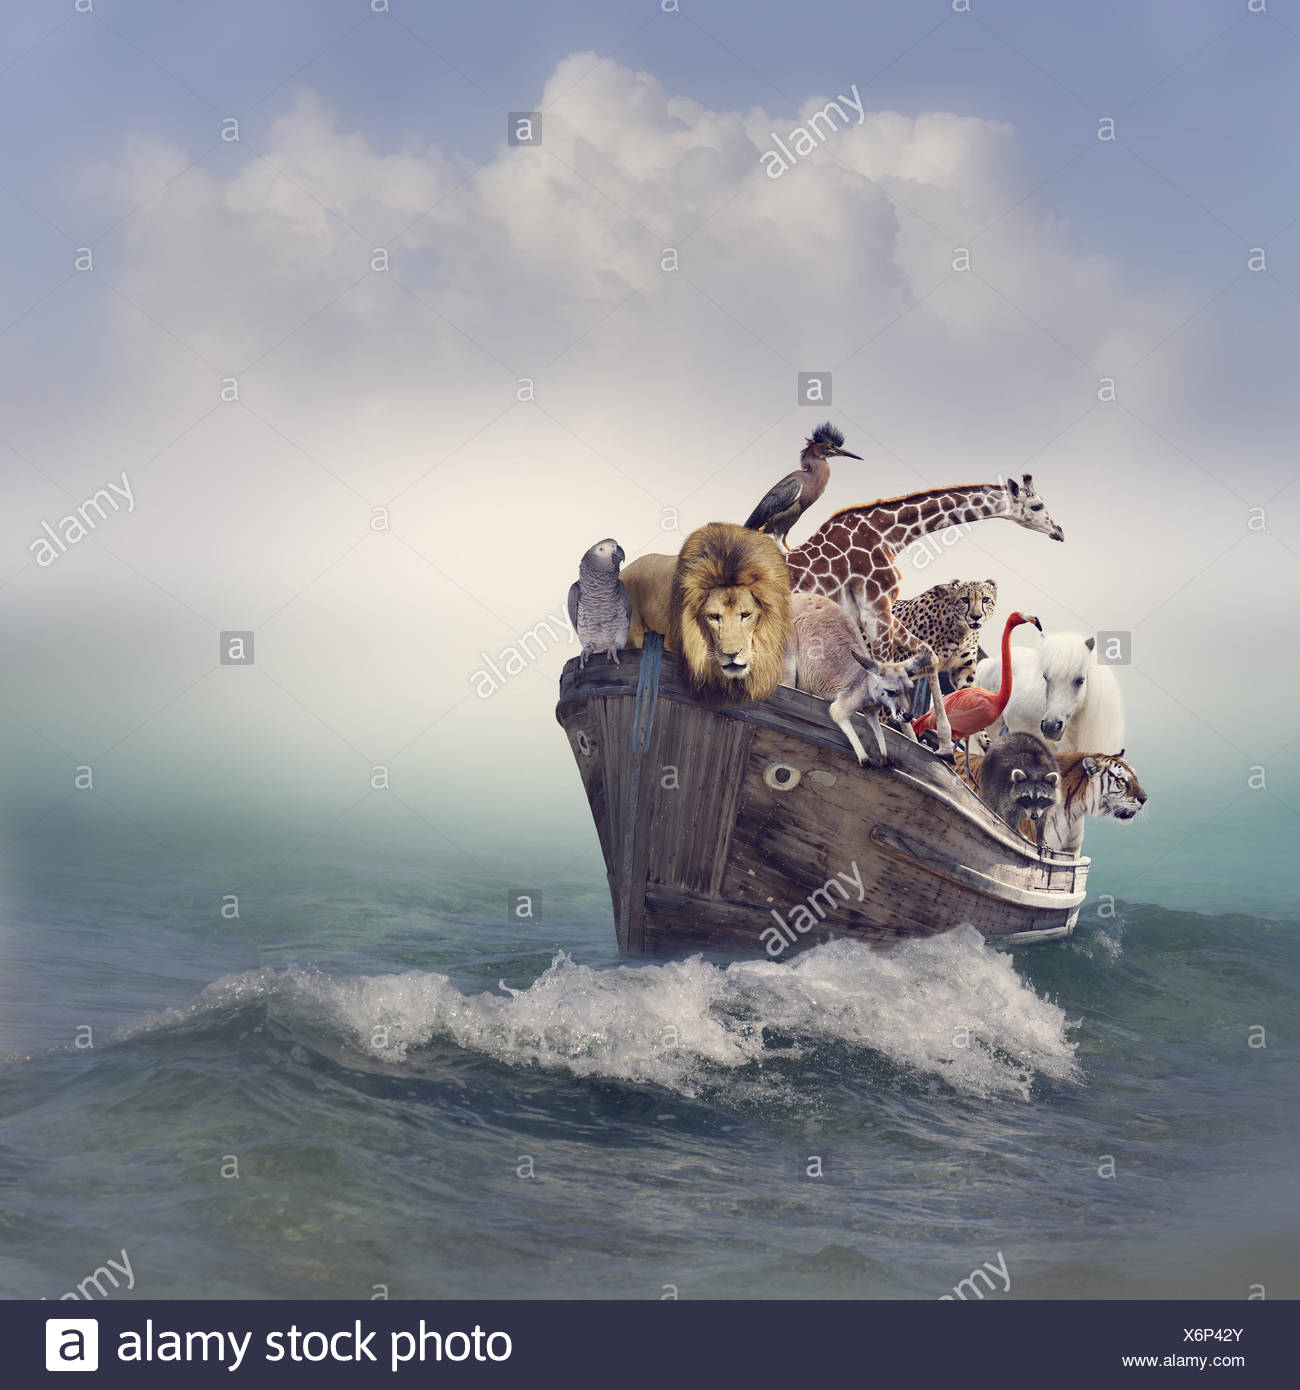 Animals in a Boat Stock Photo